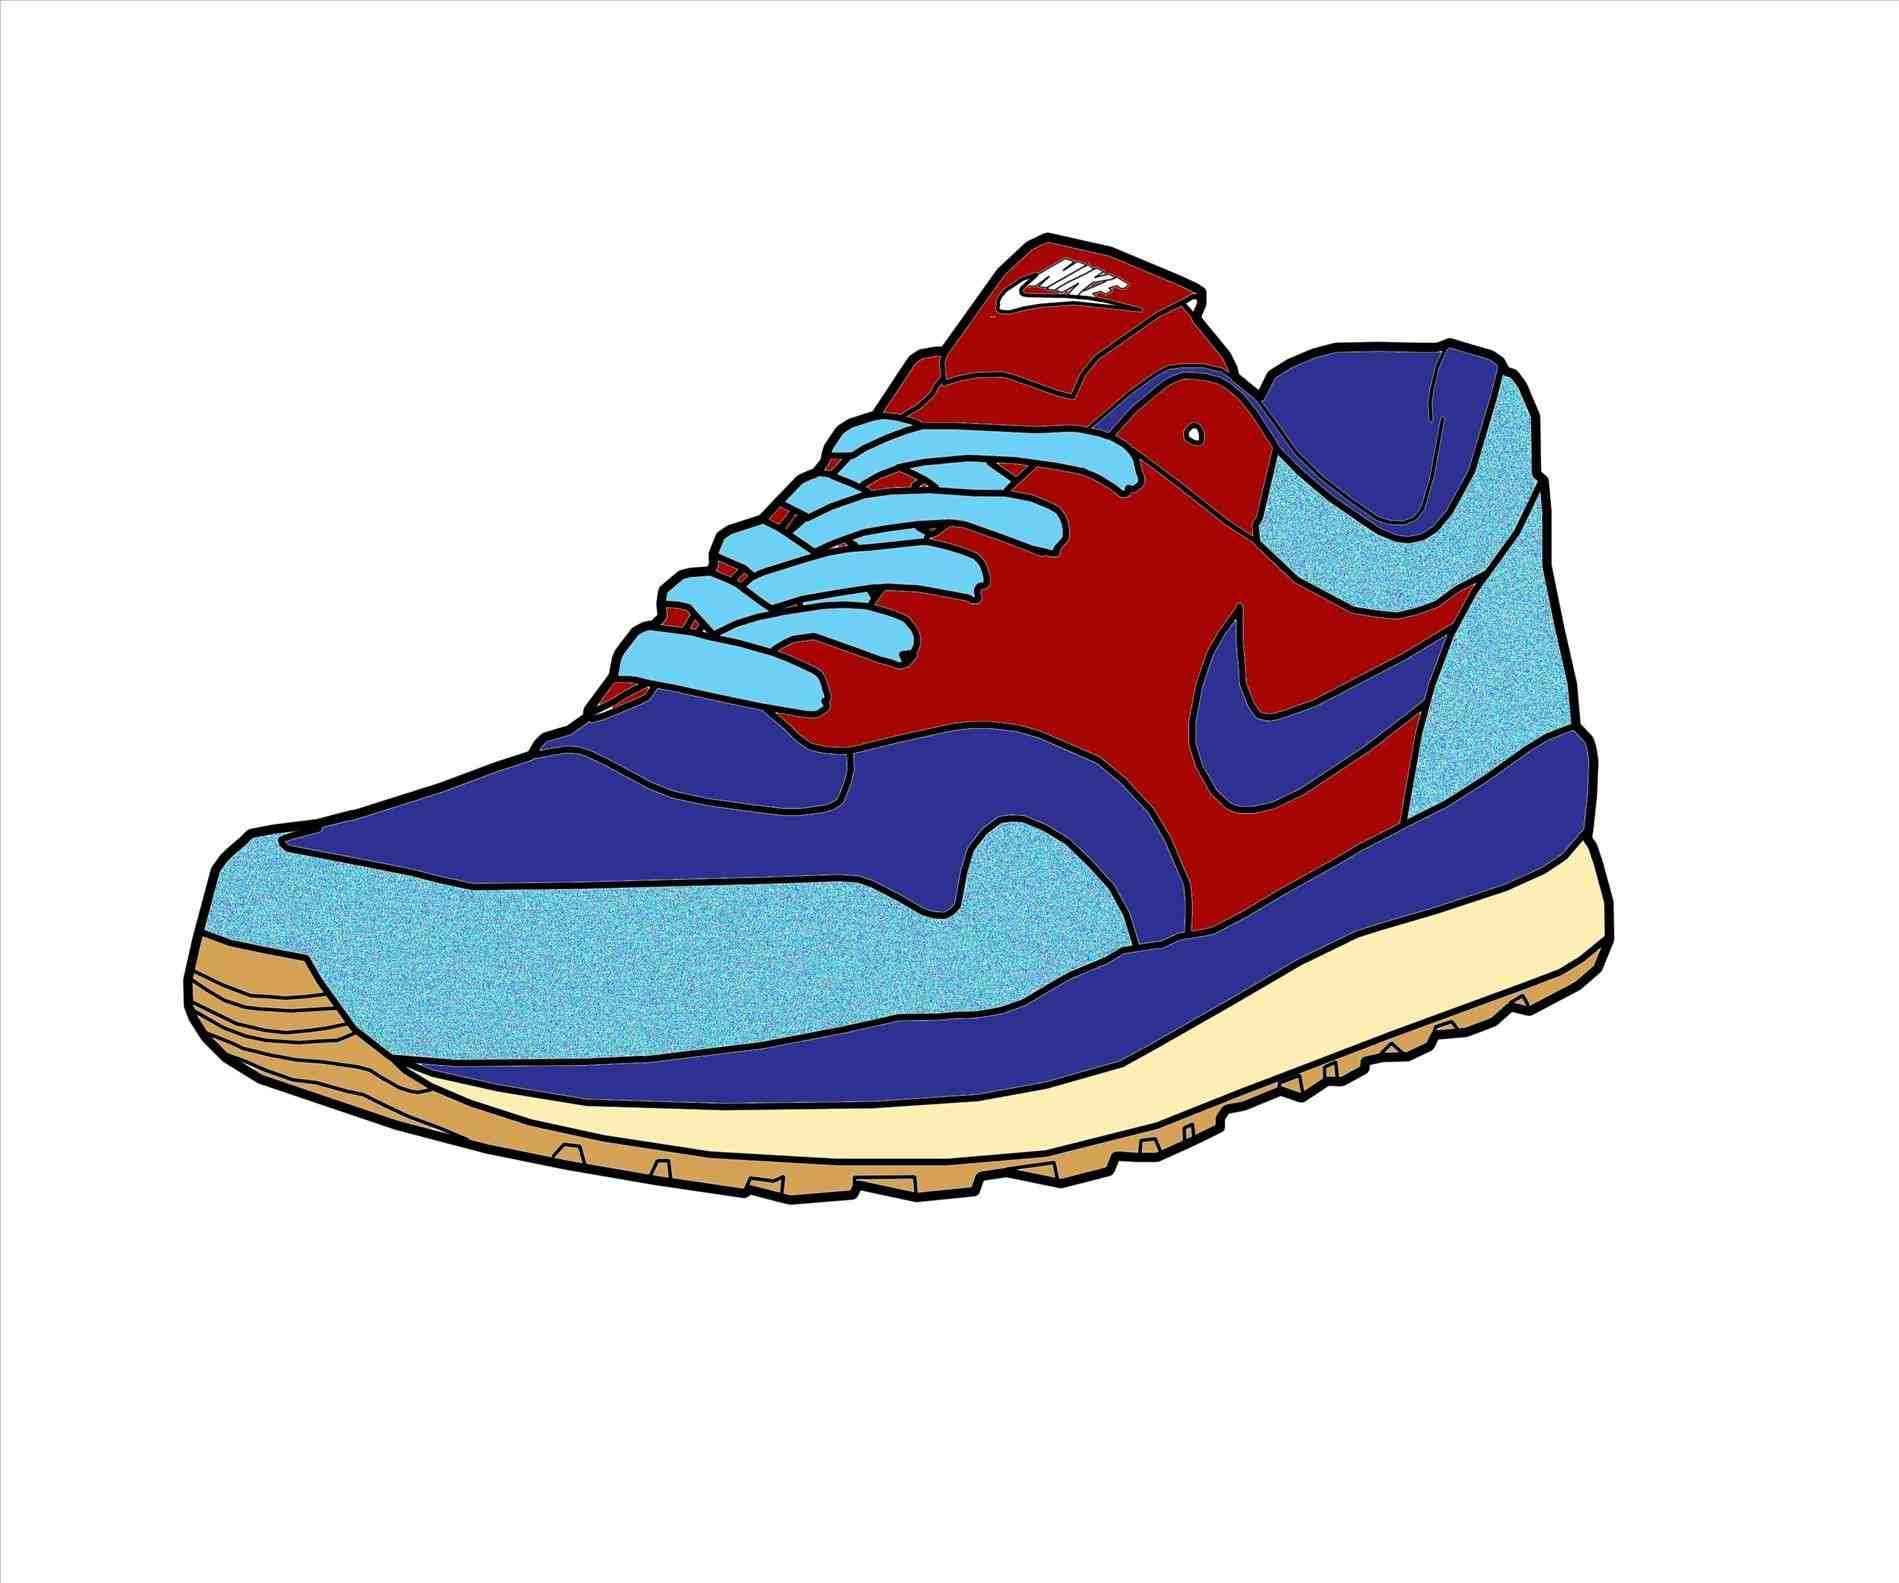 1899x1583 Isolated On Stock Nike Free Run By Mattisamazingps Nike